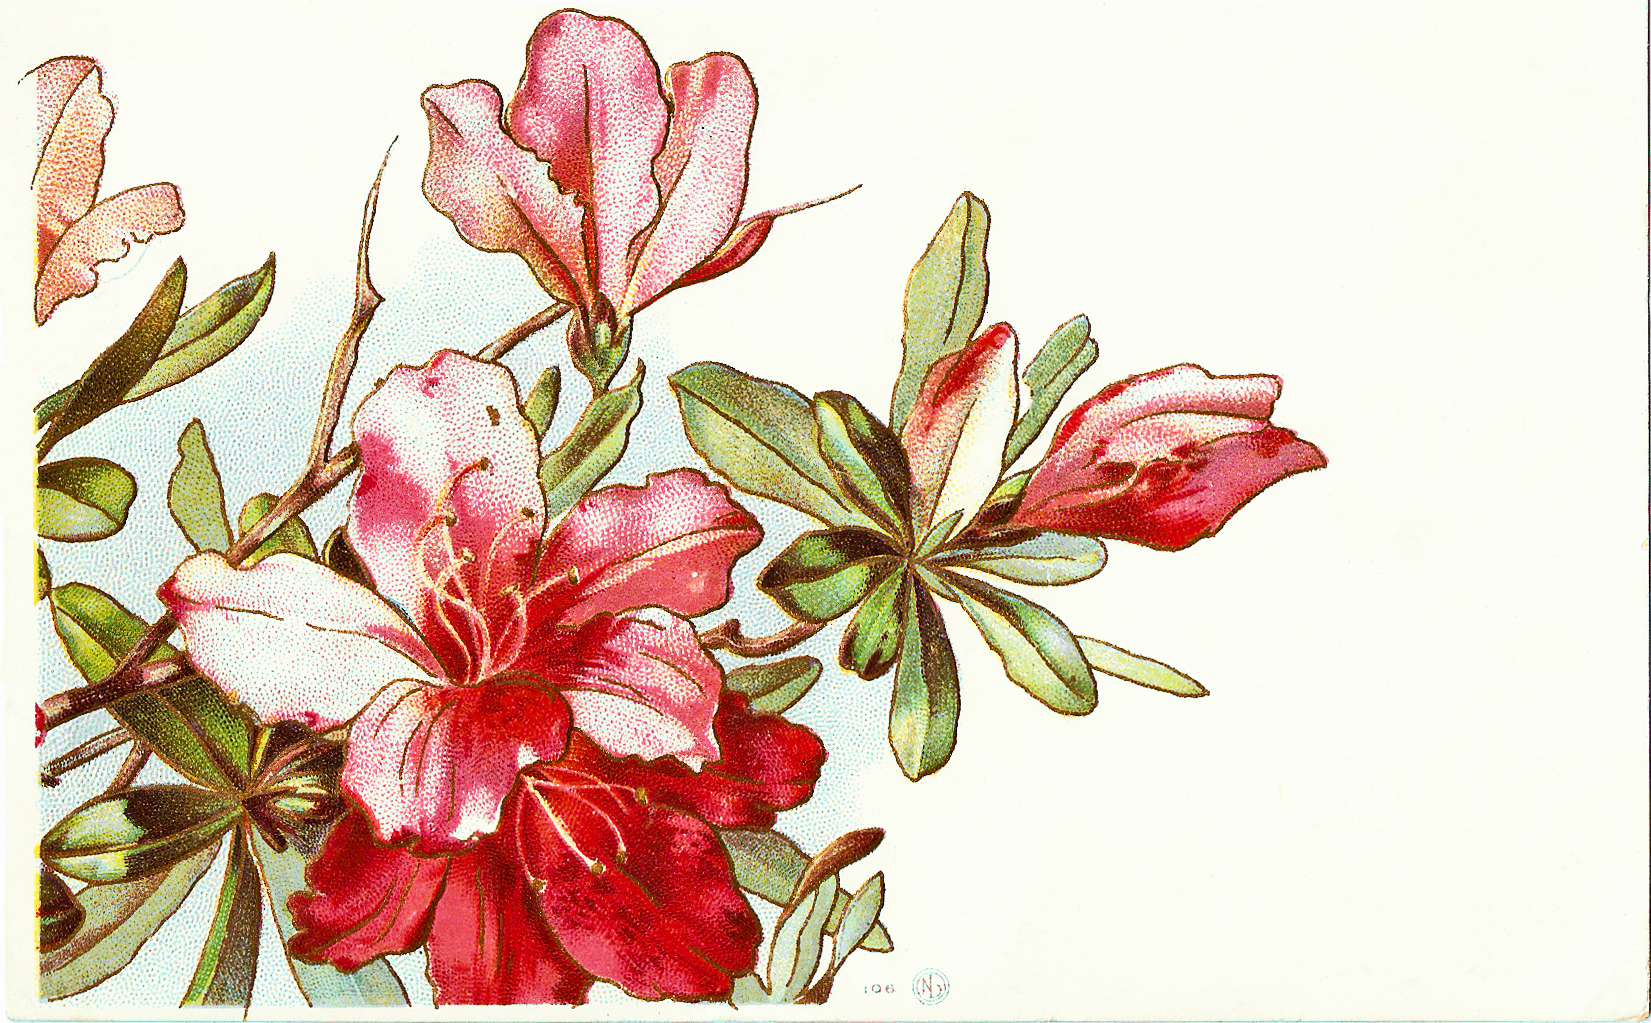 Free Amaryllis Flower Cliparts, Download Free Clip Art, Free.